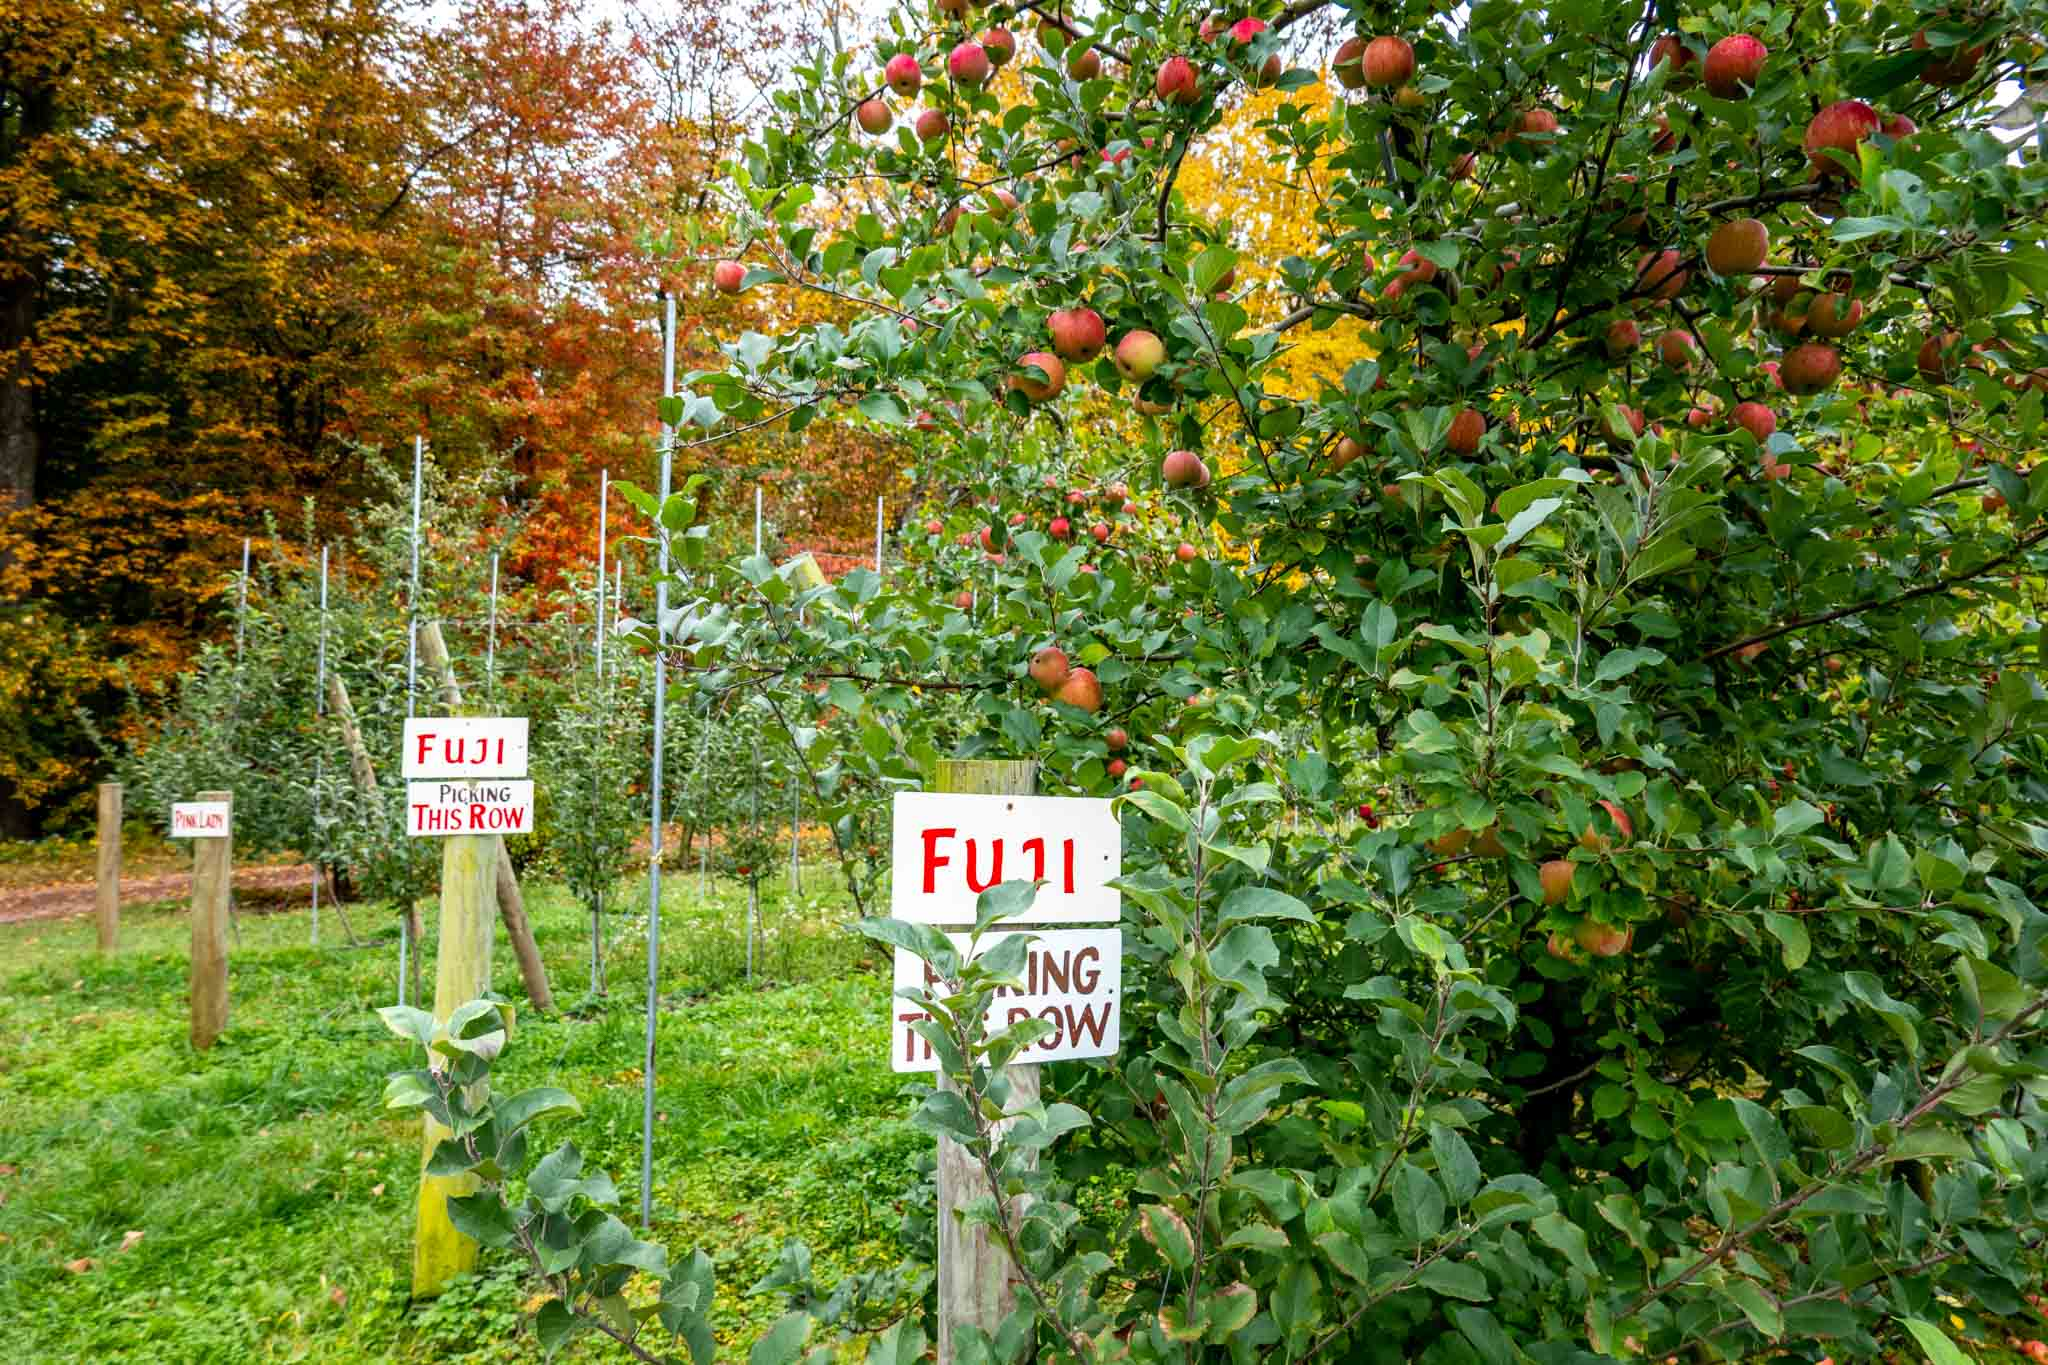 Apples in an orchard with signs marking the kind of apple to be picked